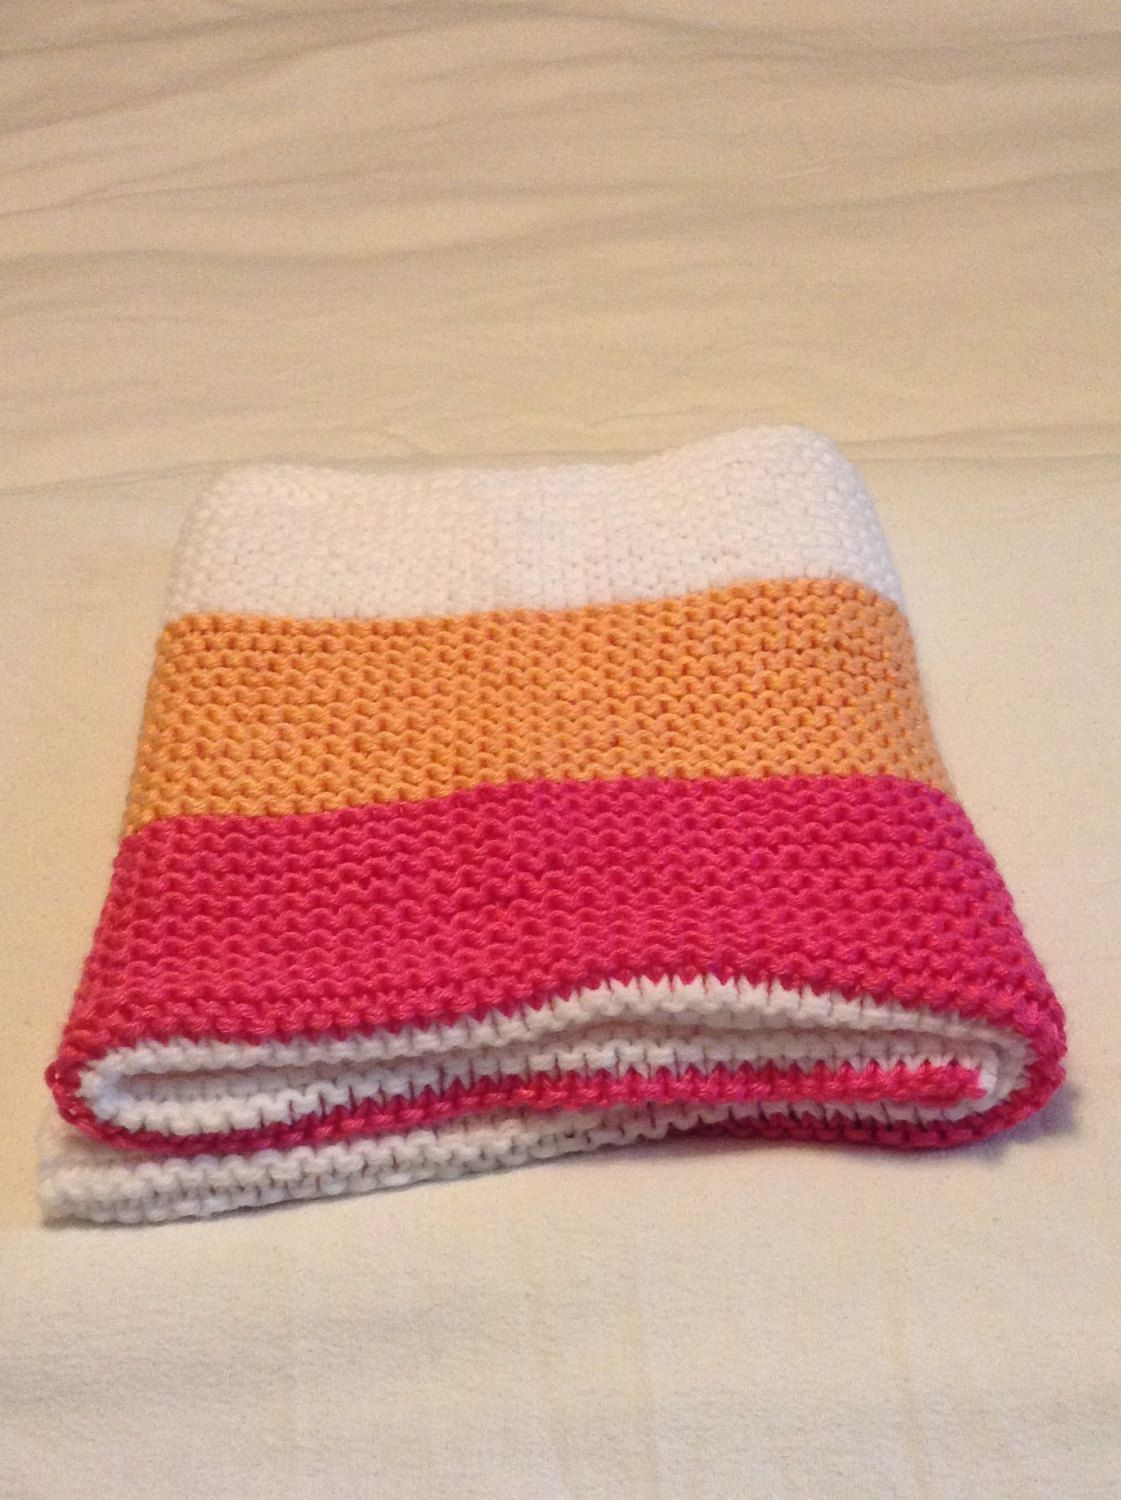 pictures How to Wash Knitted Blankets